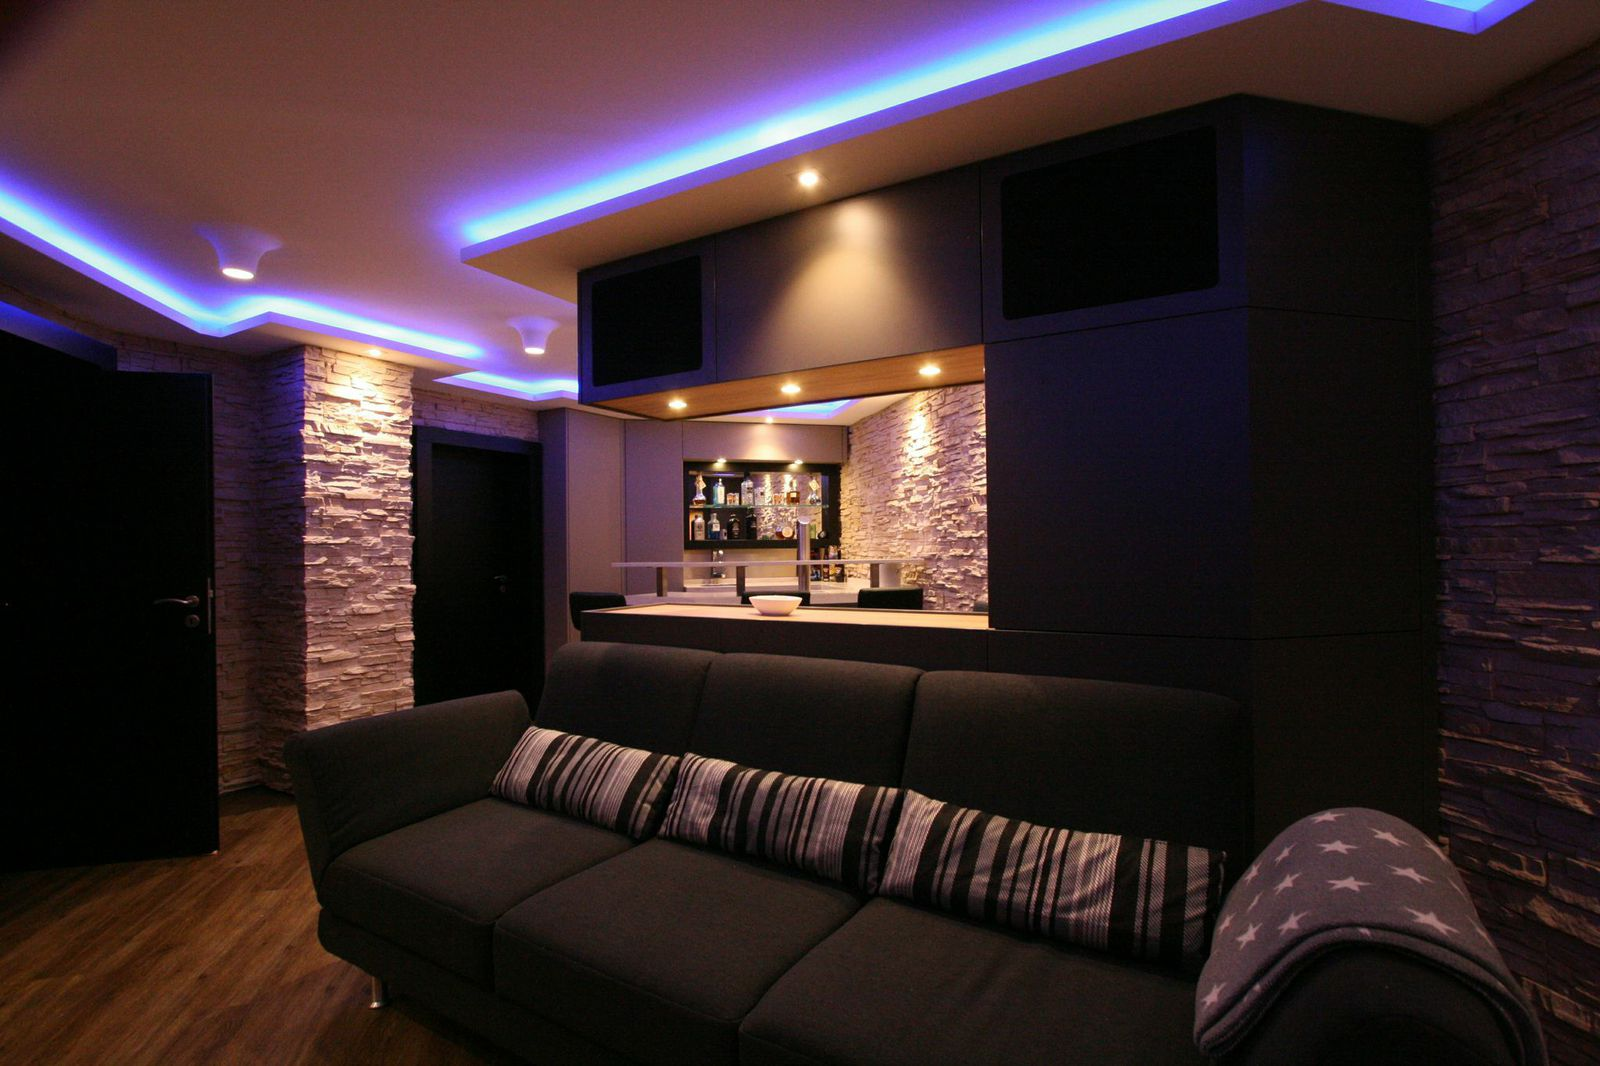 heimkino k4 cine lounge bar by team osnabr ck. Black Bedroom Furniture Sets. Home Design Ideas